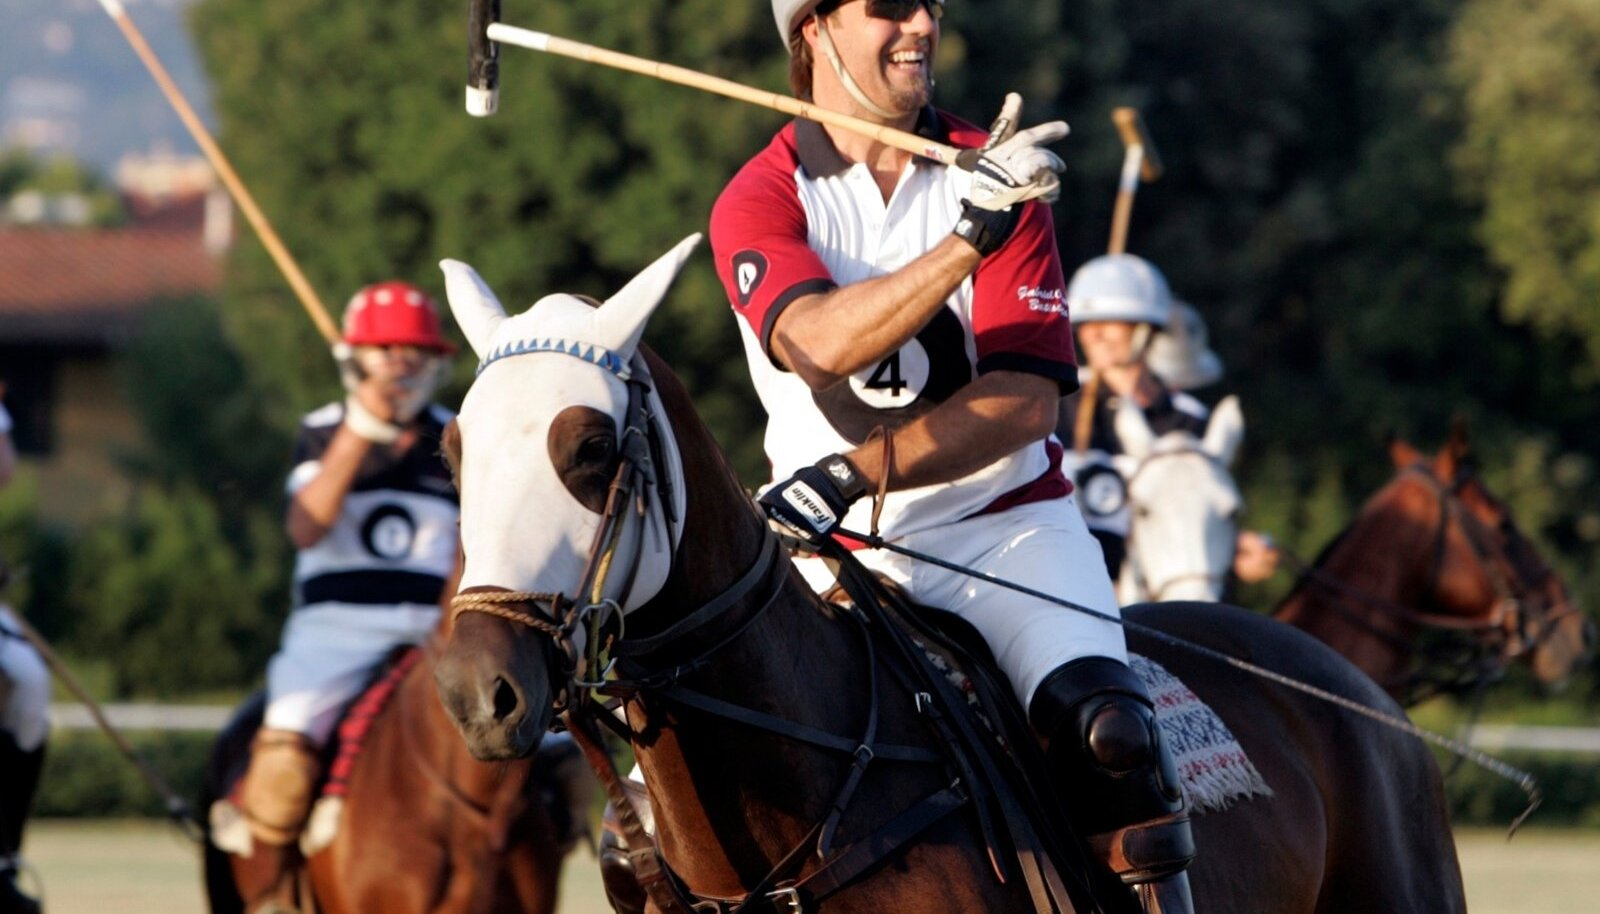 Fromer Argentine soccer player Batistuta plays polo in event by Italian fashion house Toscana during the Pitti Uomo men's fashion week in Florence